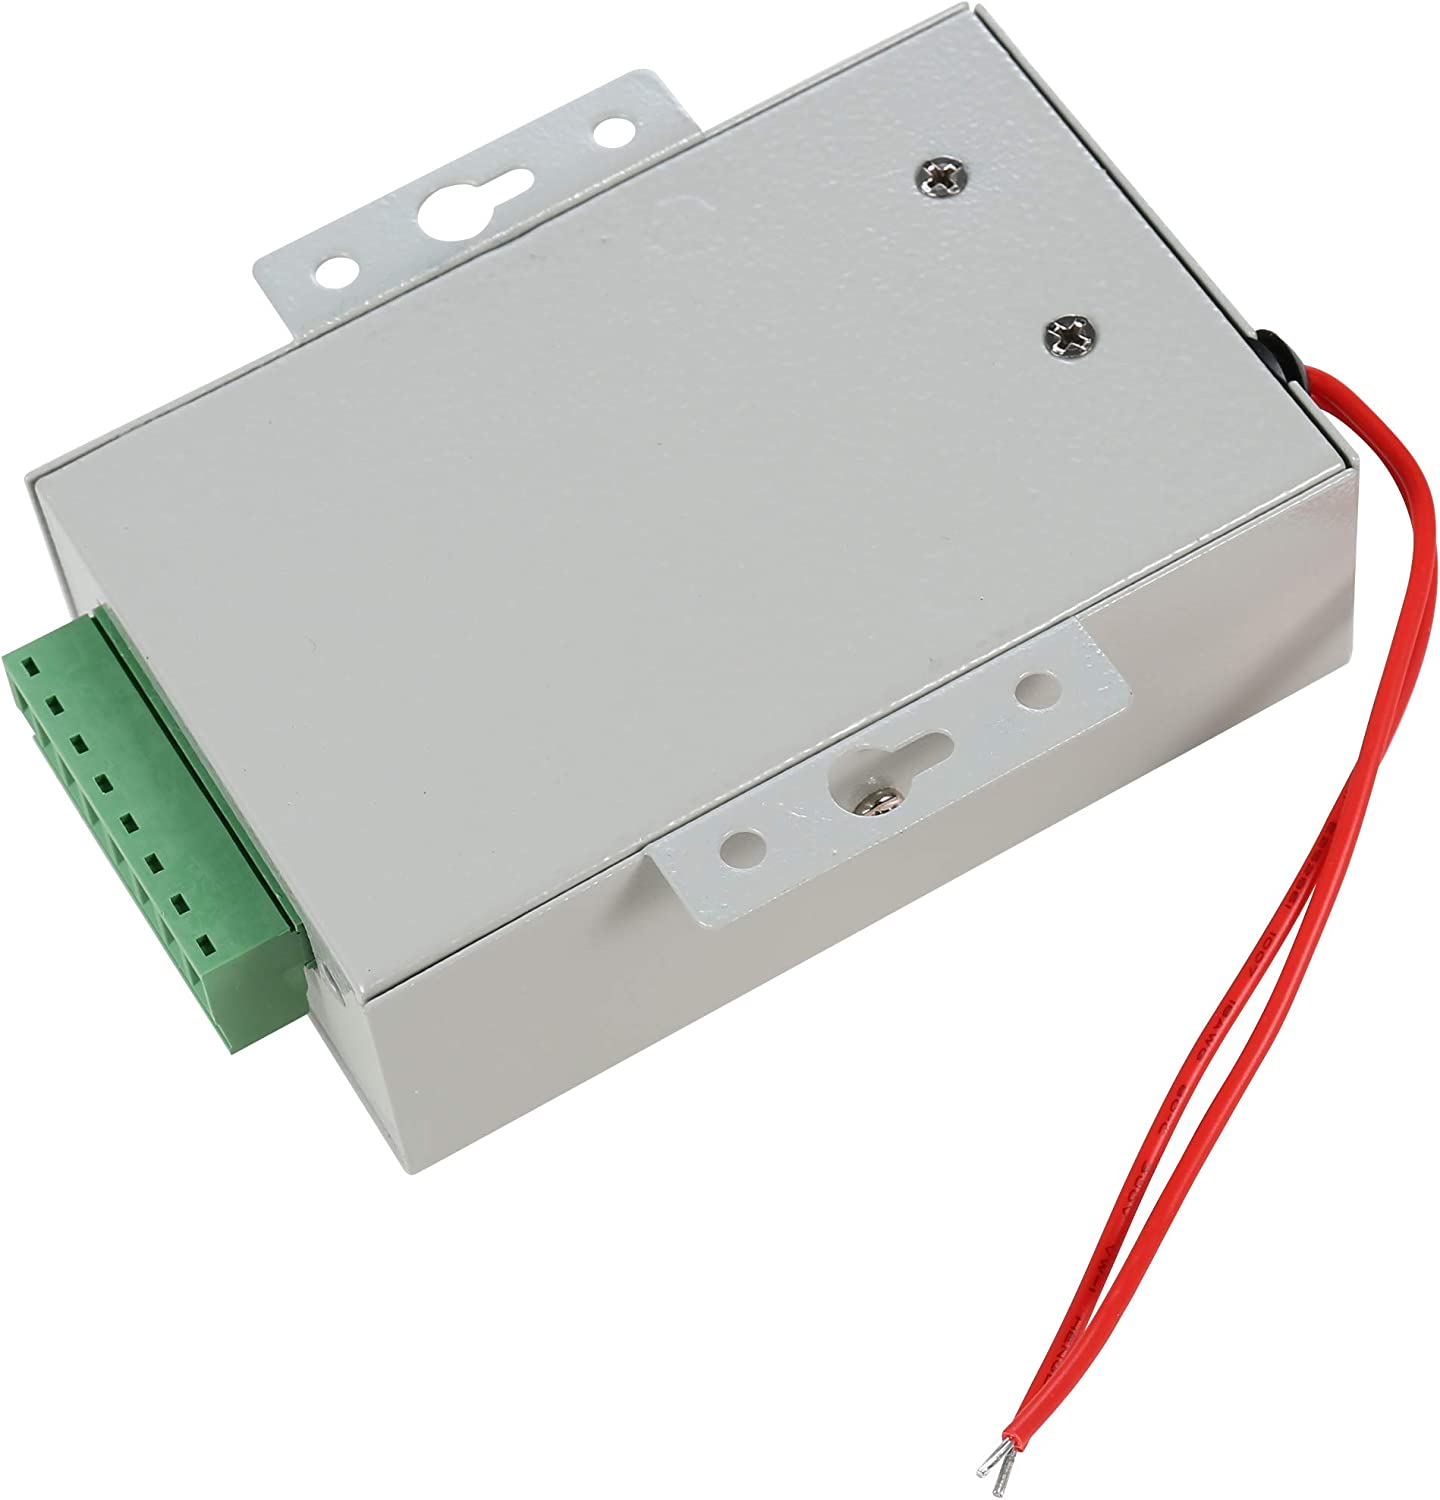 SDPAWA Access Control Power Supply AC110-240V DC12V 3A Worldwide Voltage for Home Office Door Access System